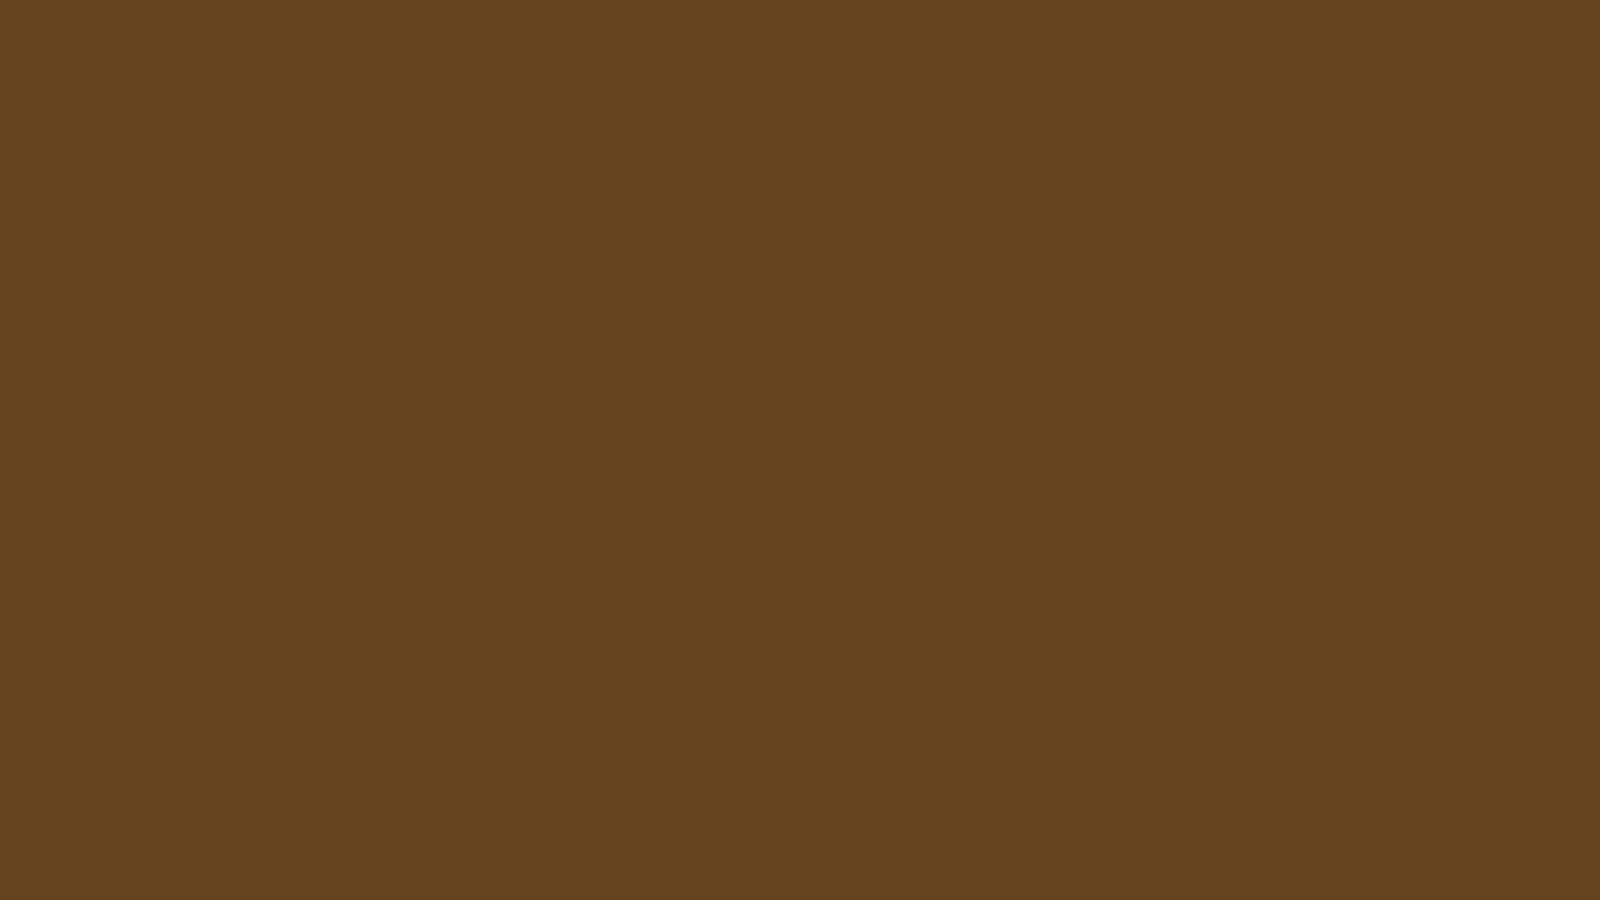 1600x900 Otter Brown Solid Color Background